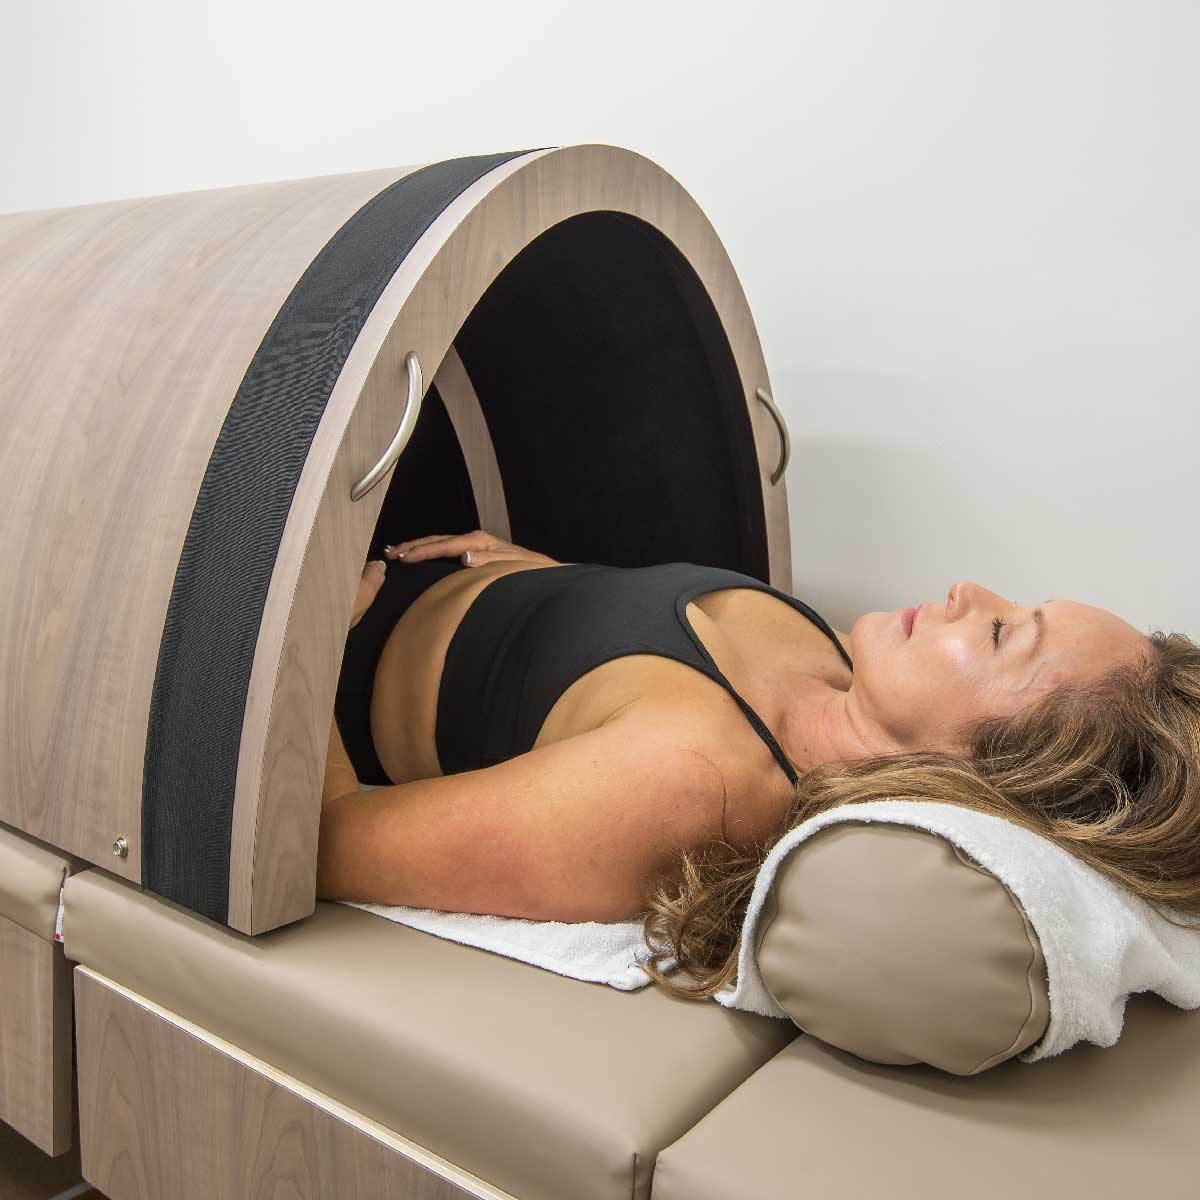 Infrared Sauna, Revival, About Us